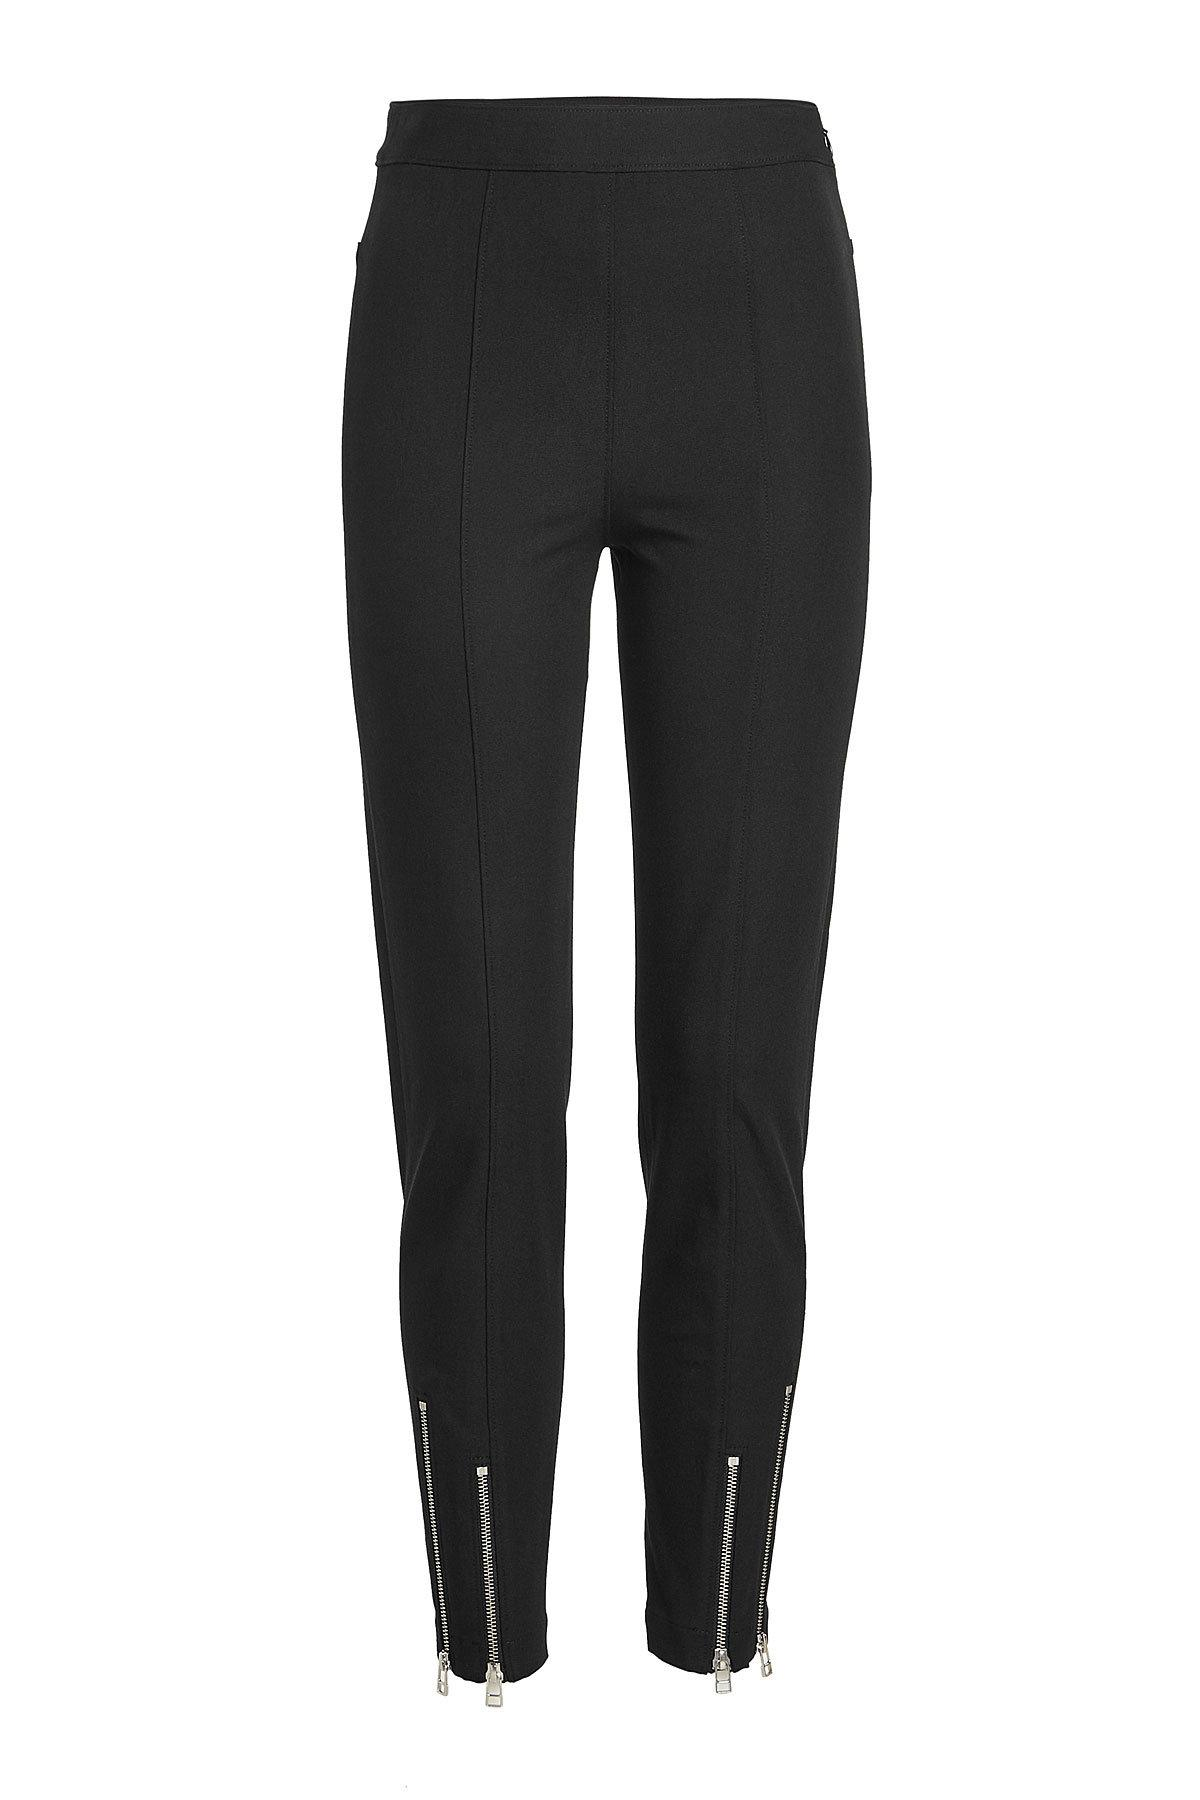 T By Alexander Wang Pants With Zipped Ankles In Black